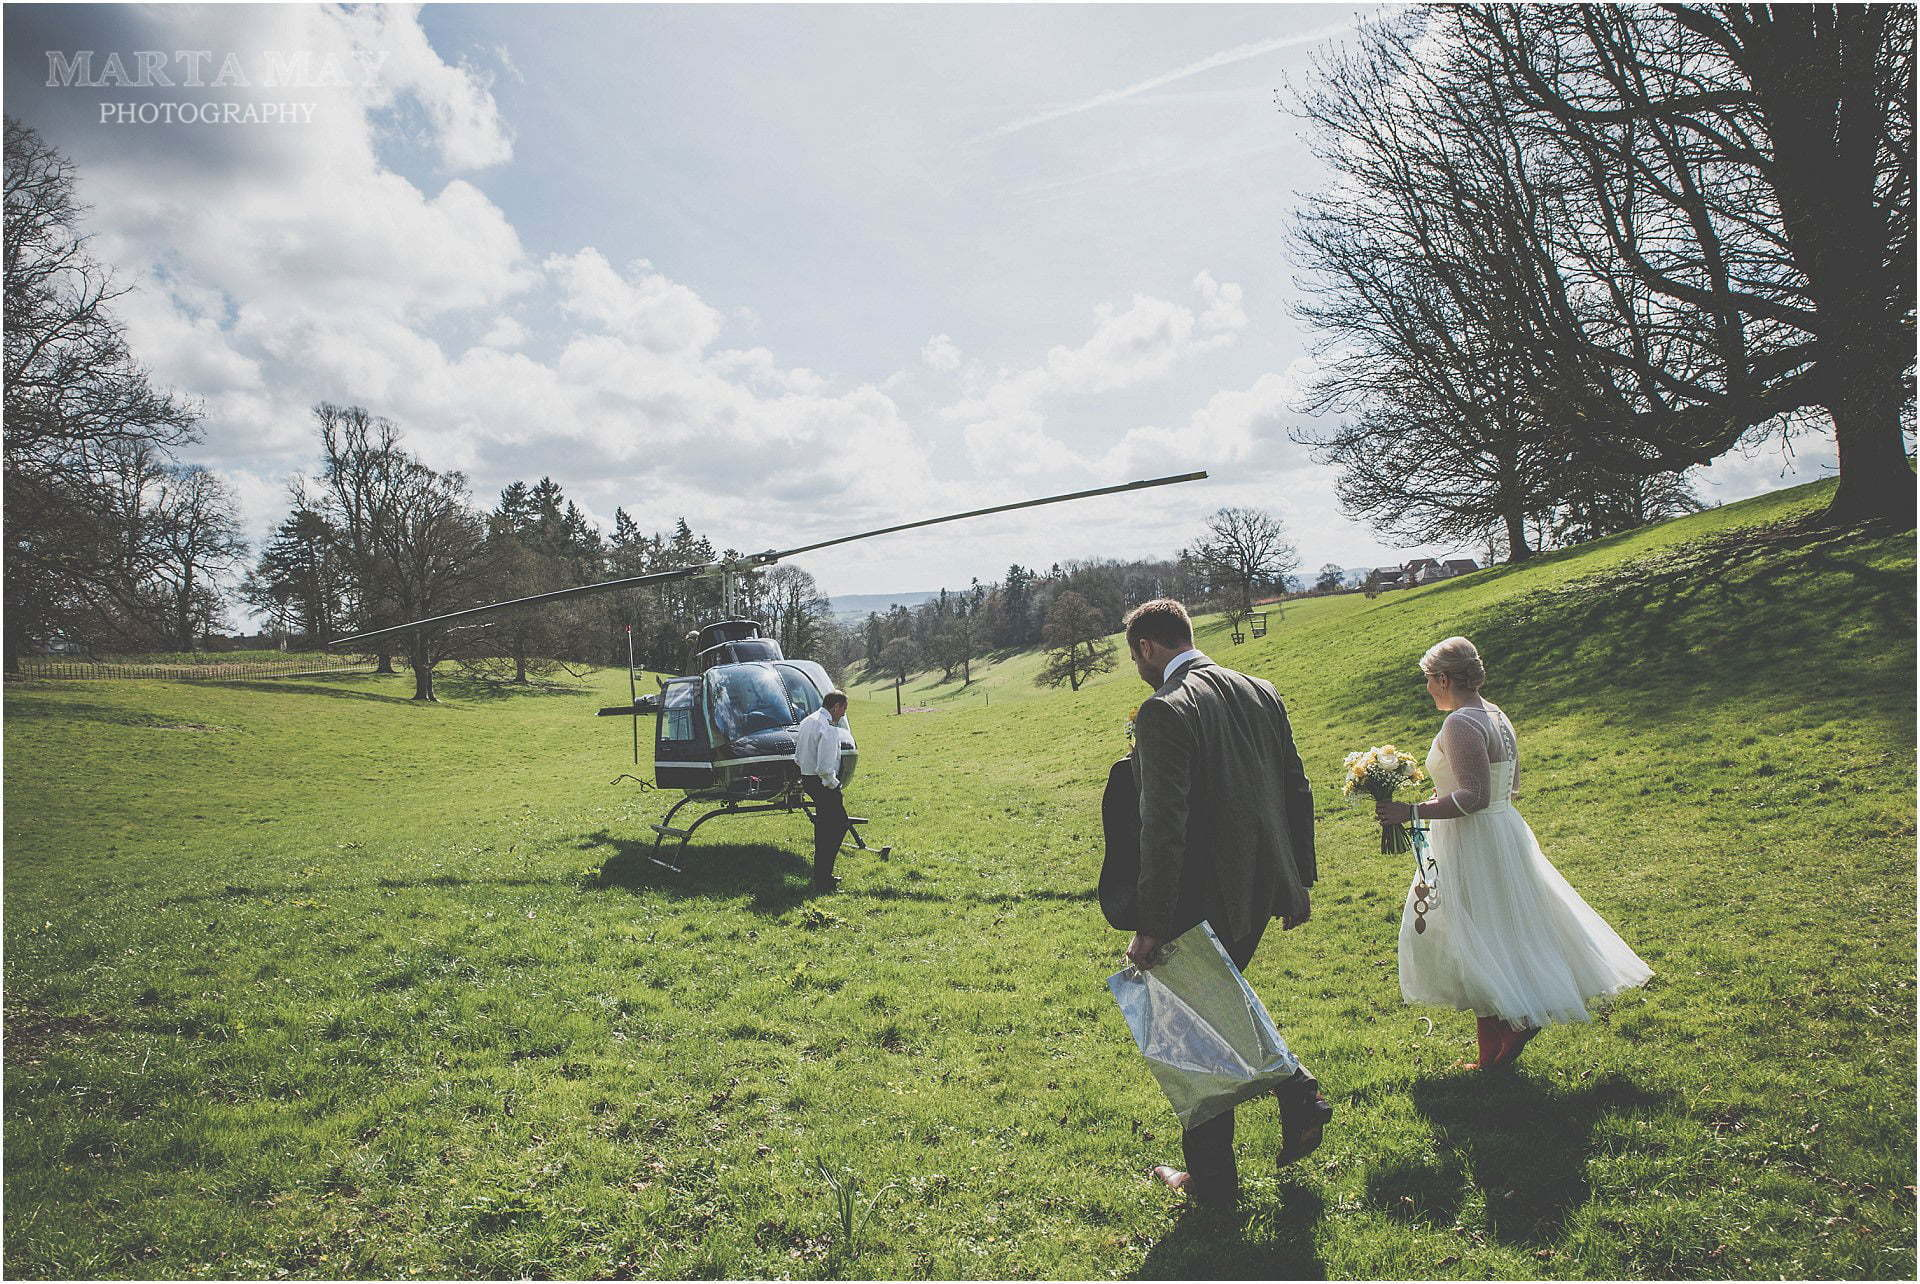 different wedding transport idea helicopter